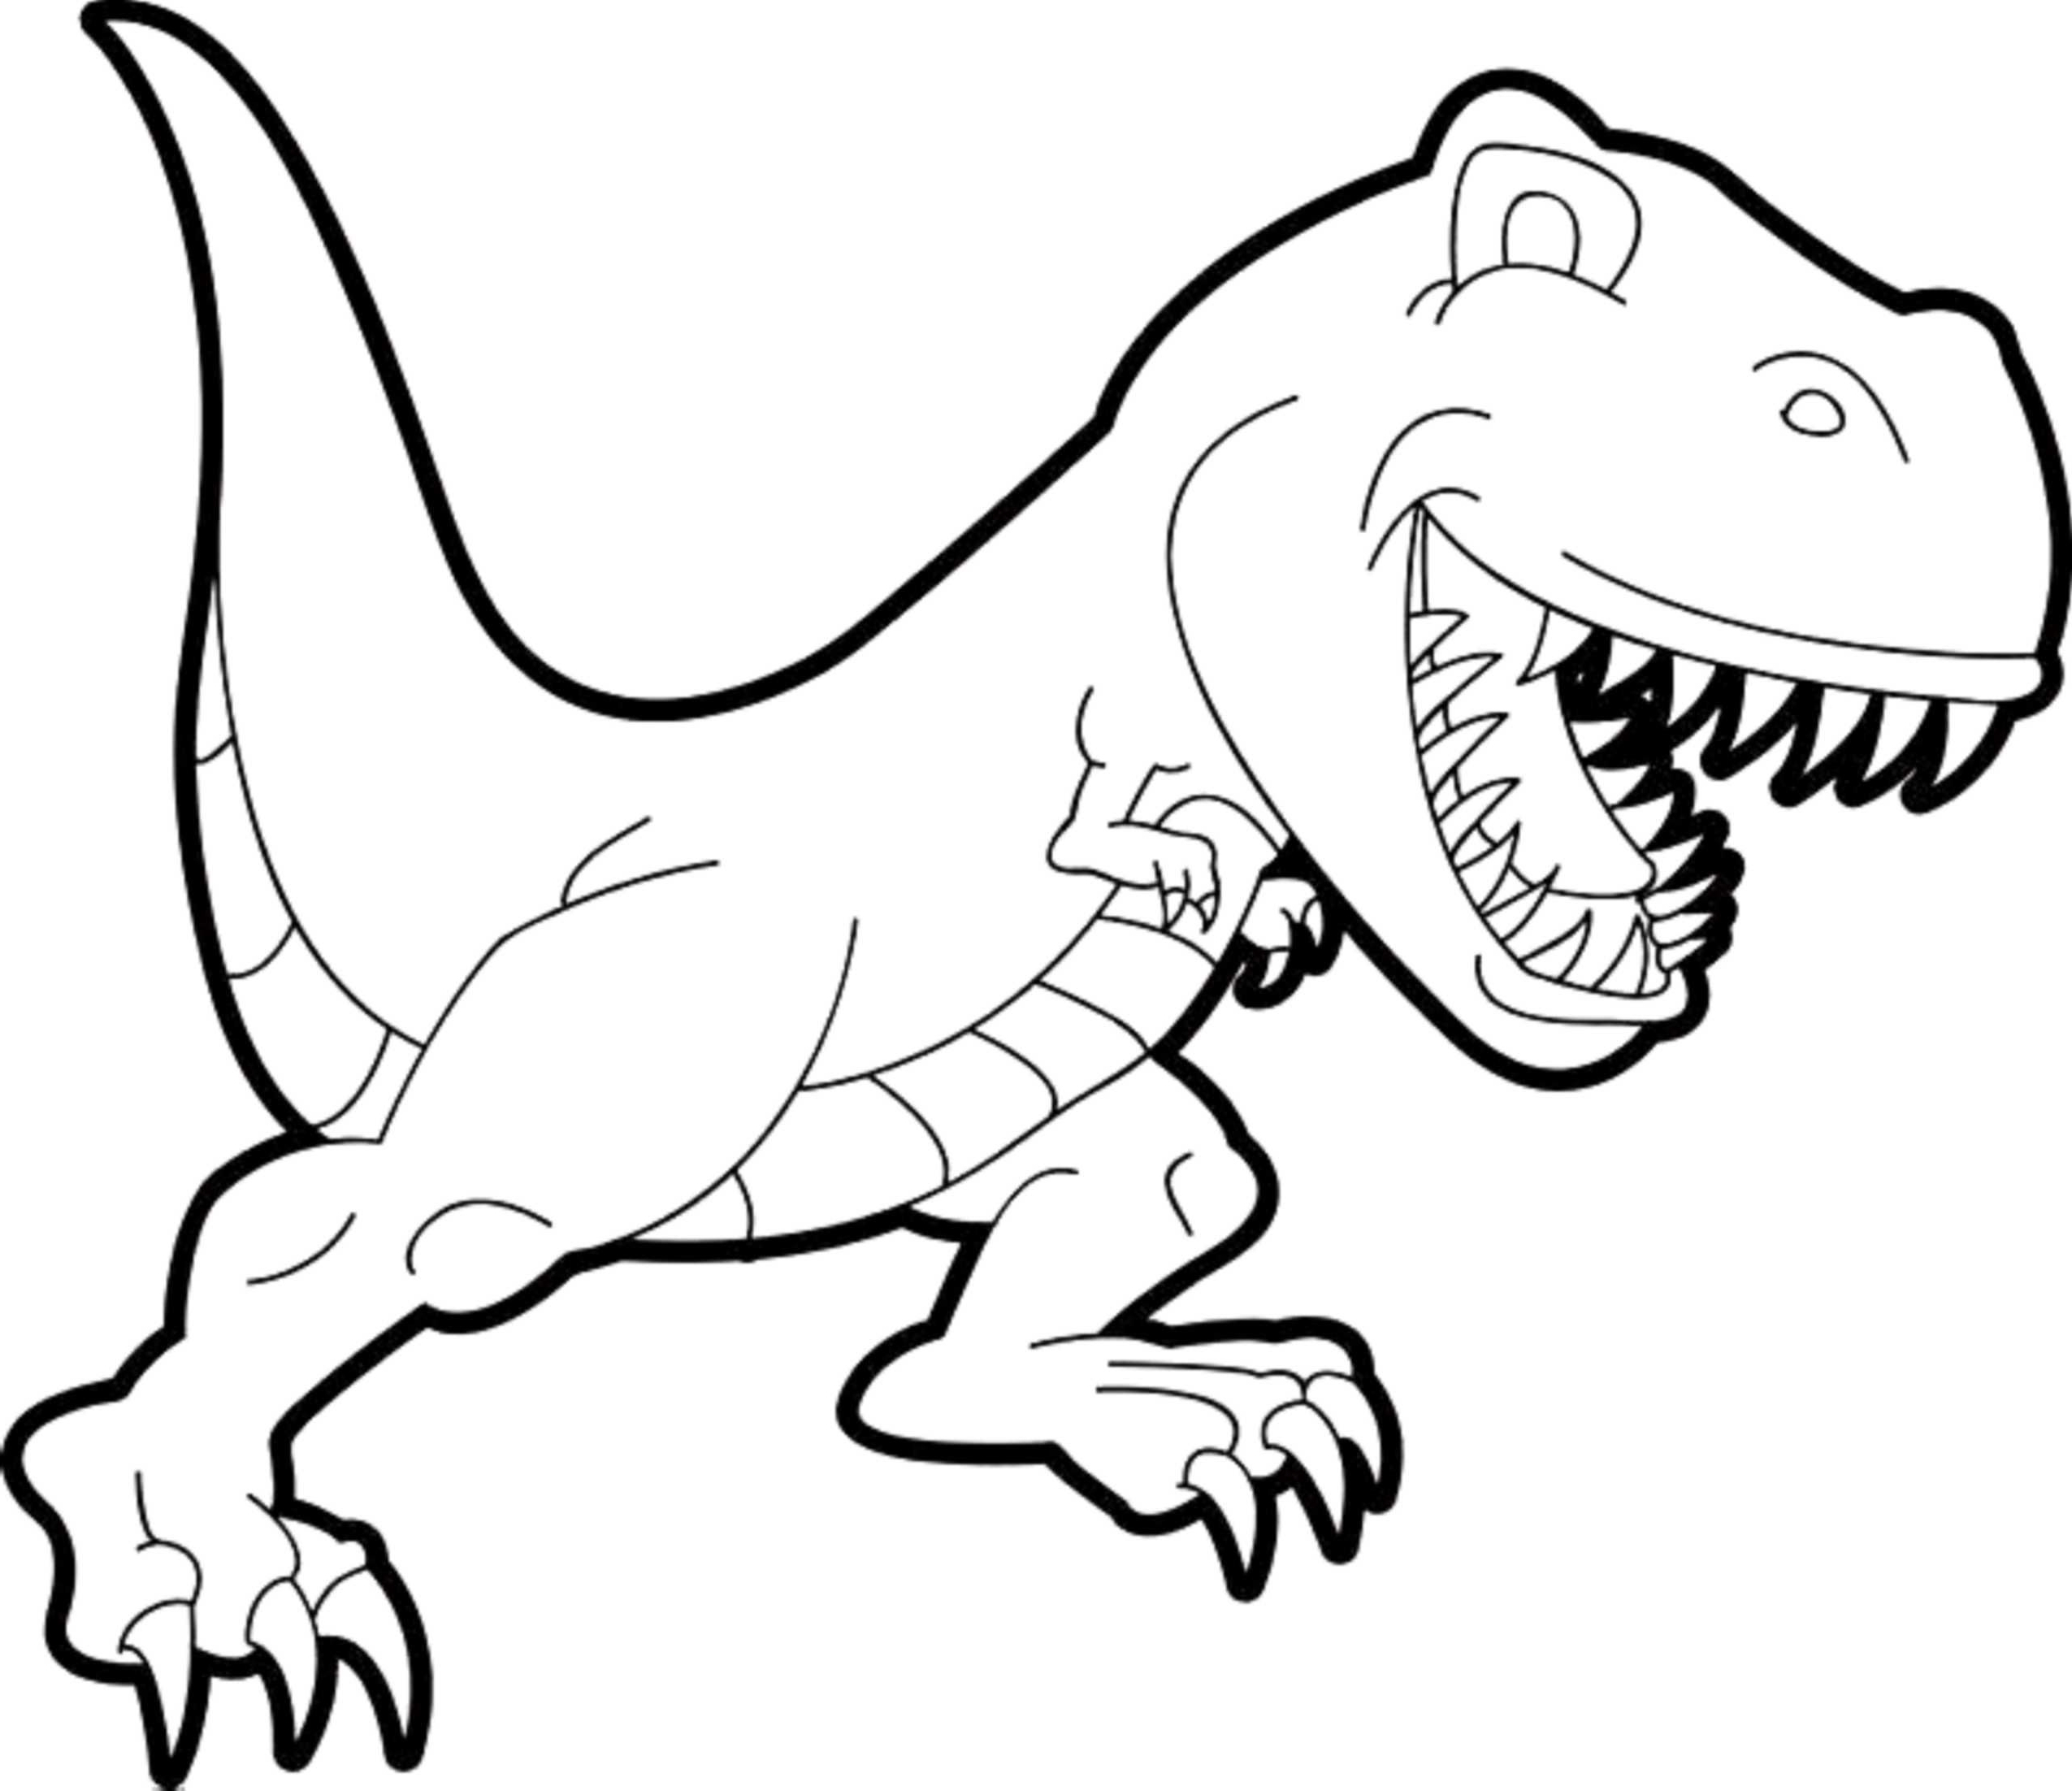 Scary Dinosaur Coloring Pages Page 220 Connecticuttrafficcourts Kids Coloring Area Picture Of